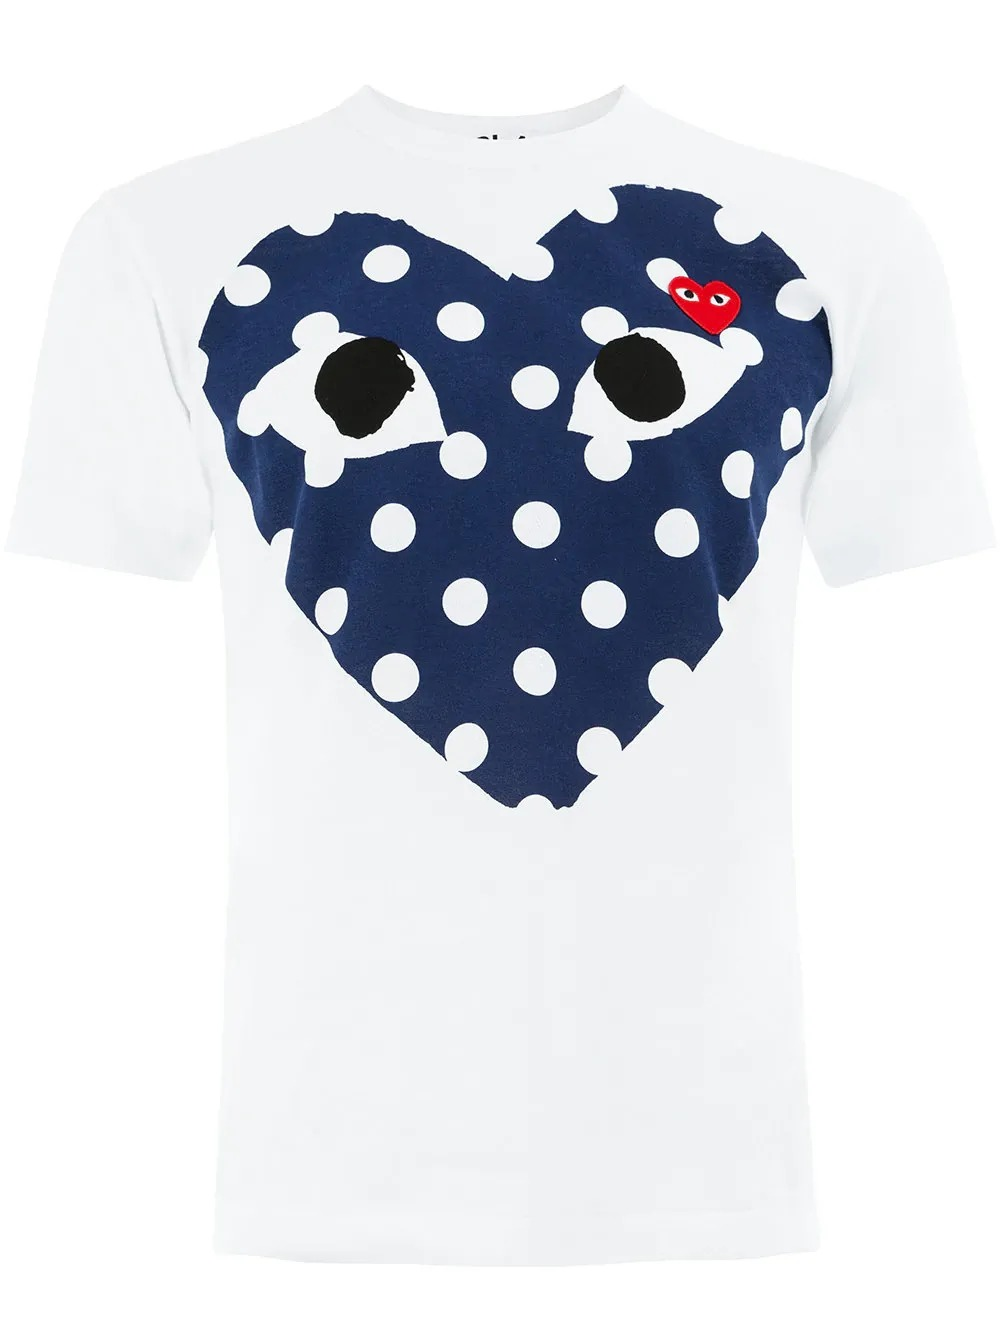 PLAY COMME des GARCONS ロゴ&ハートパッチのトップス